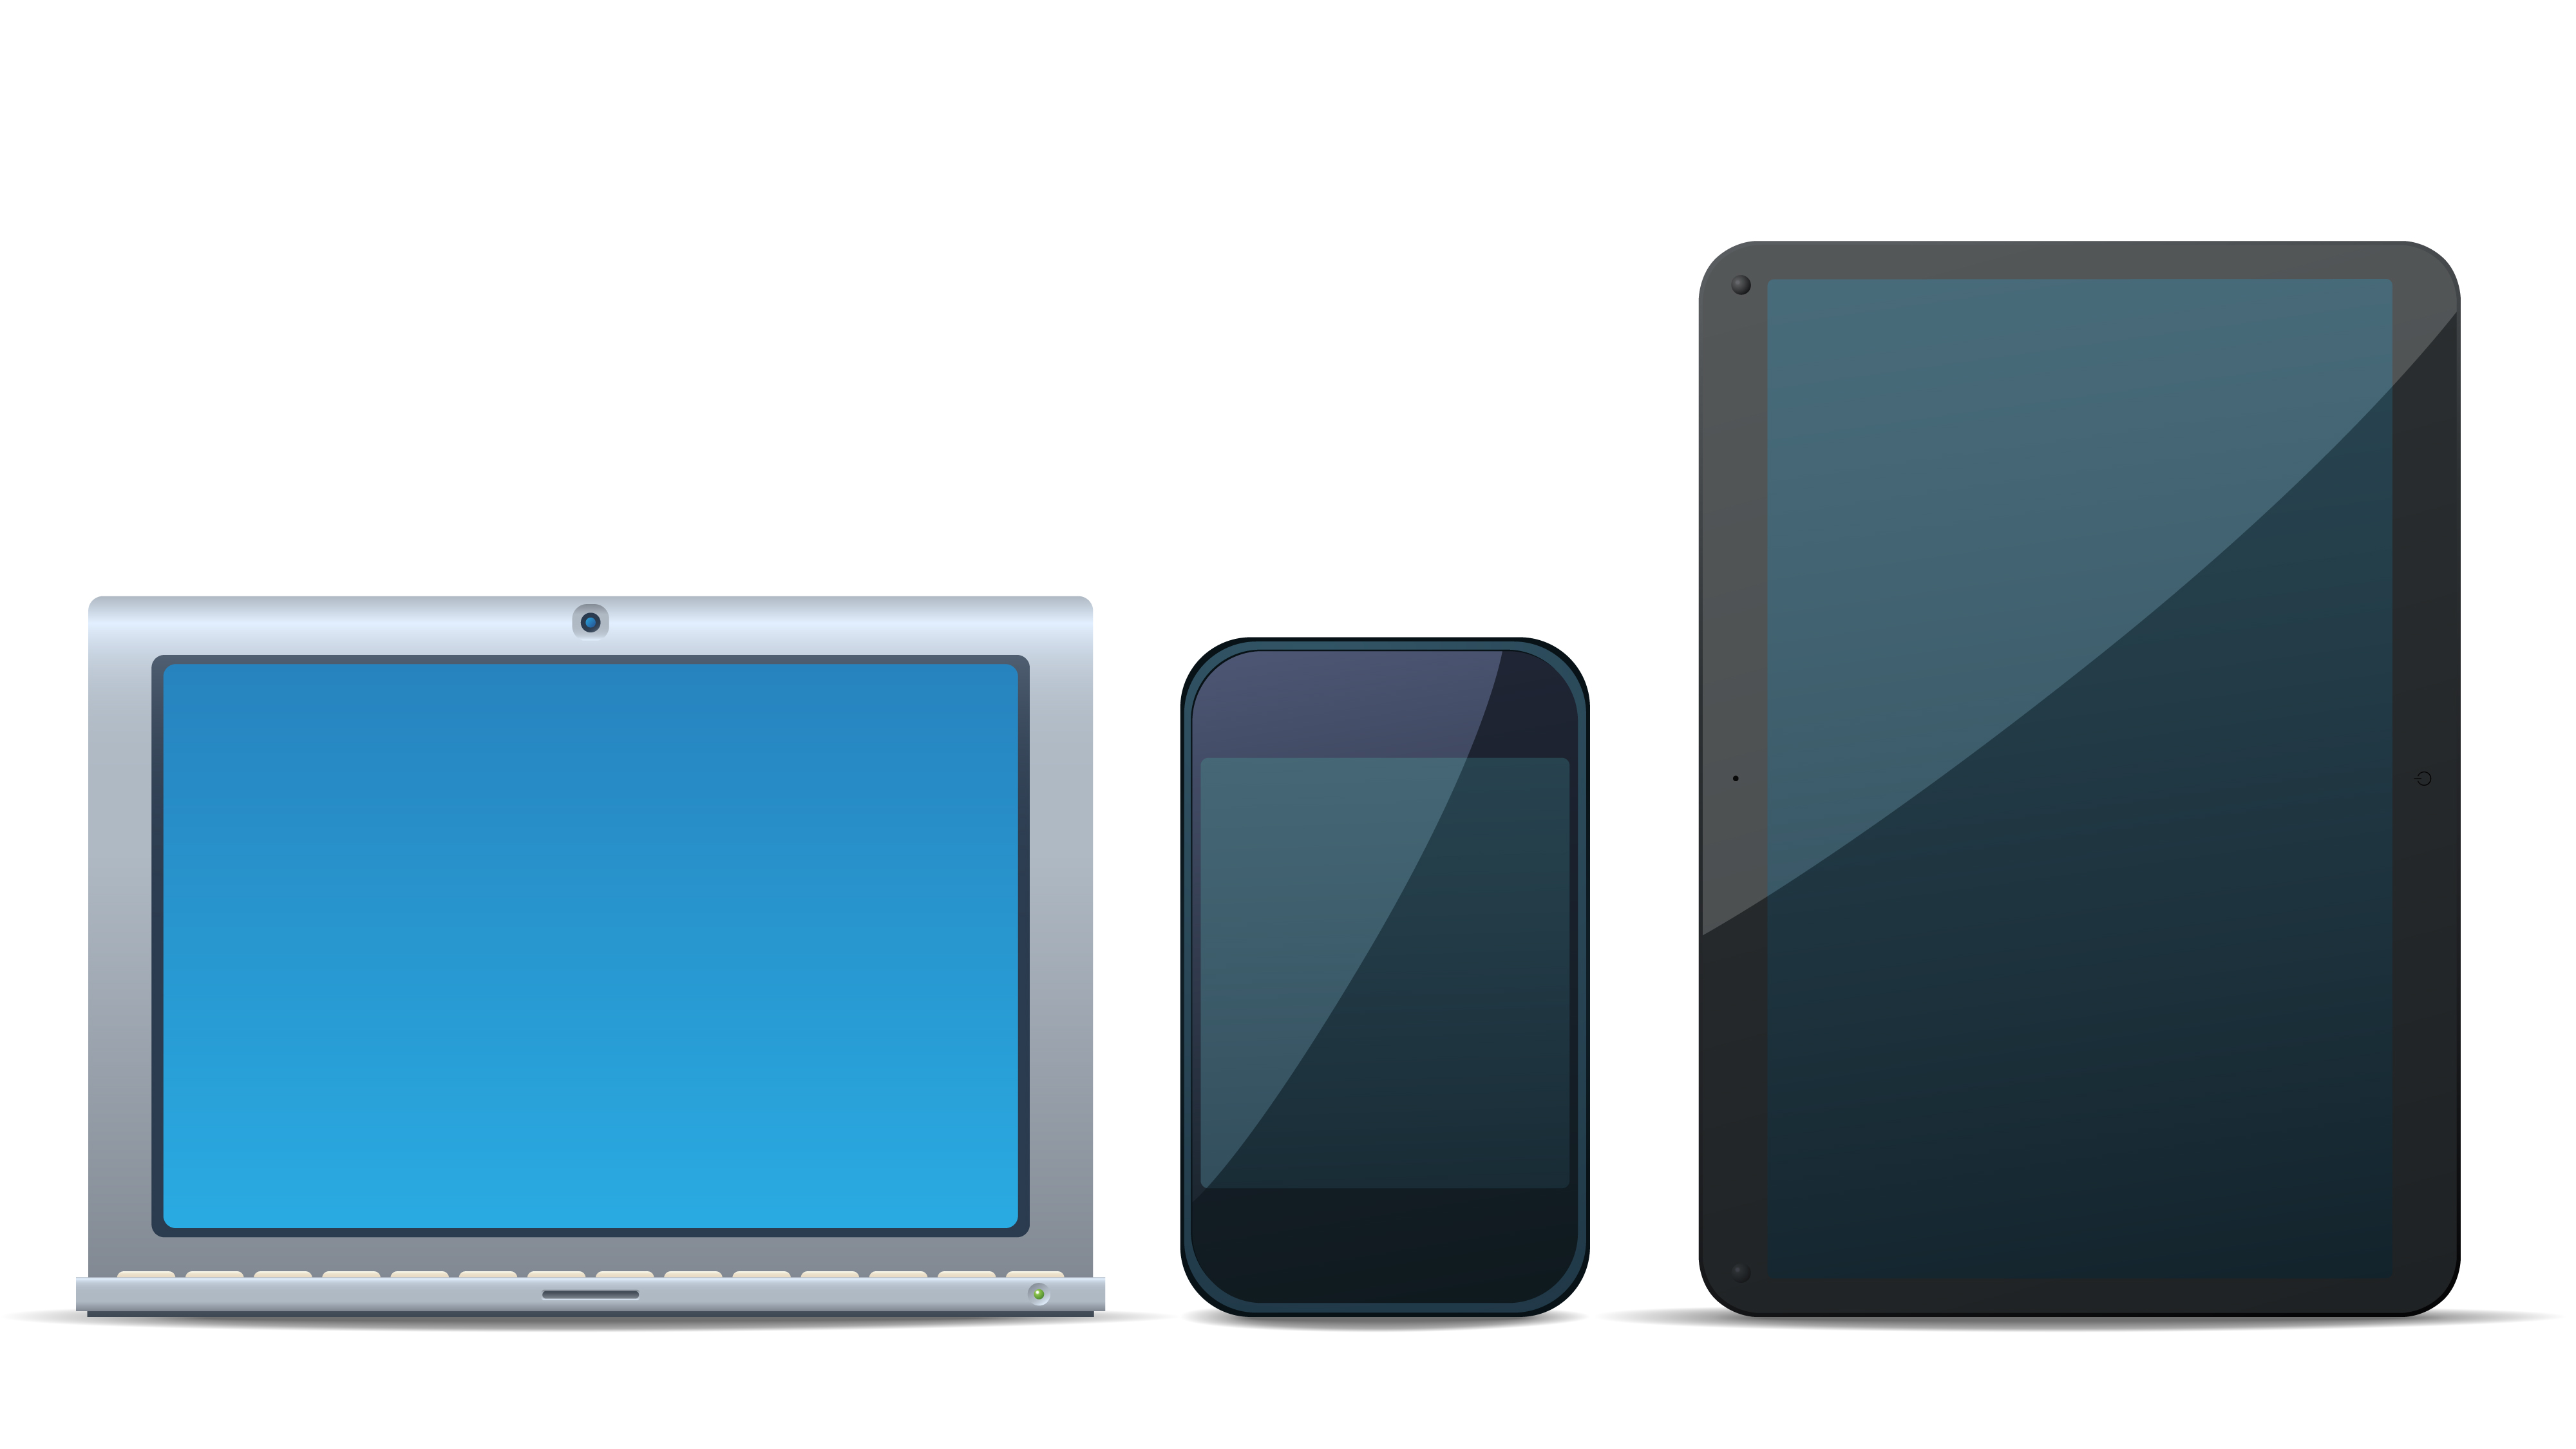 Laptop, phone, and tablet